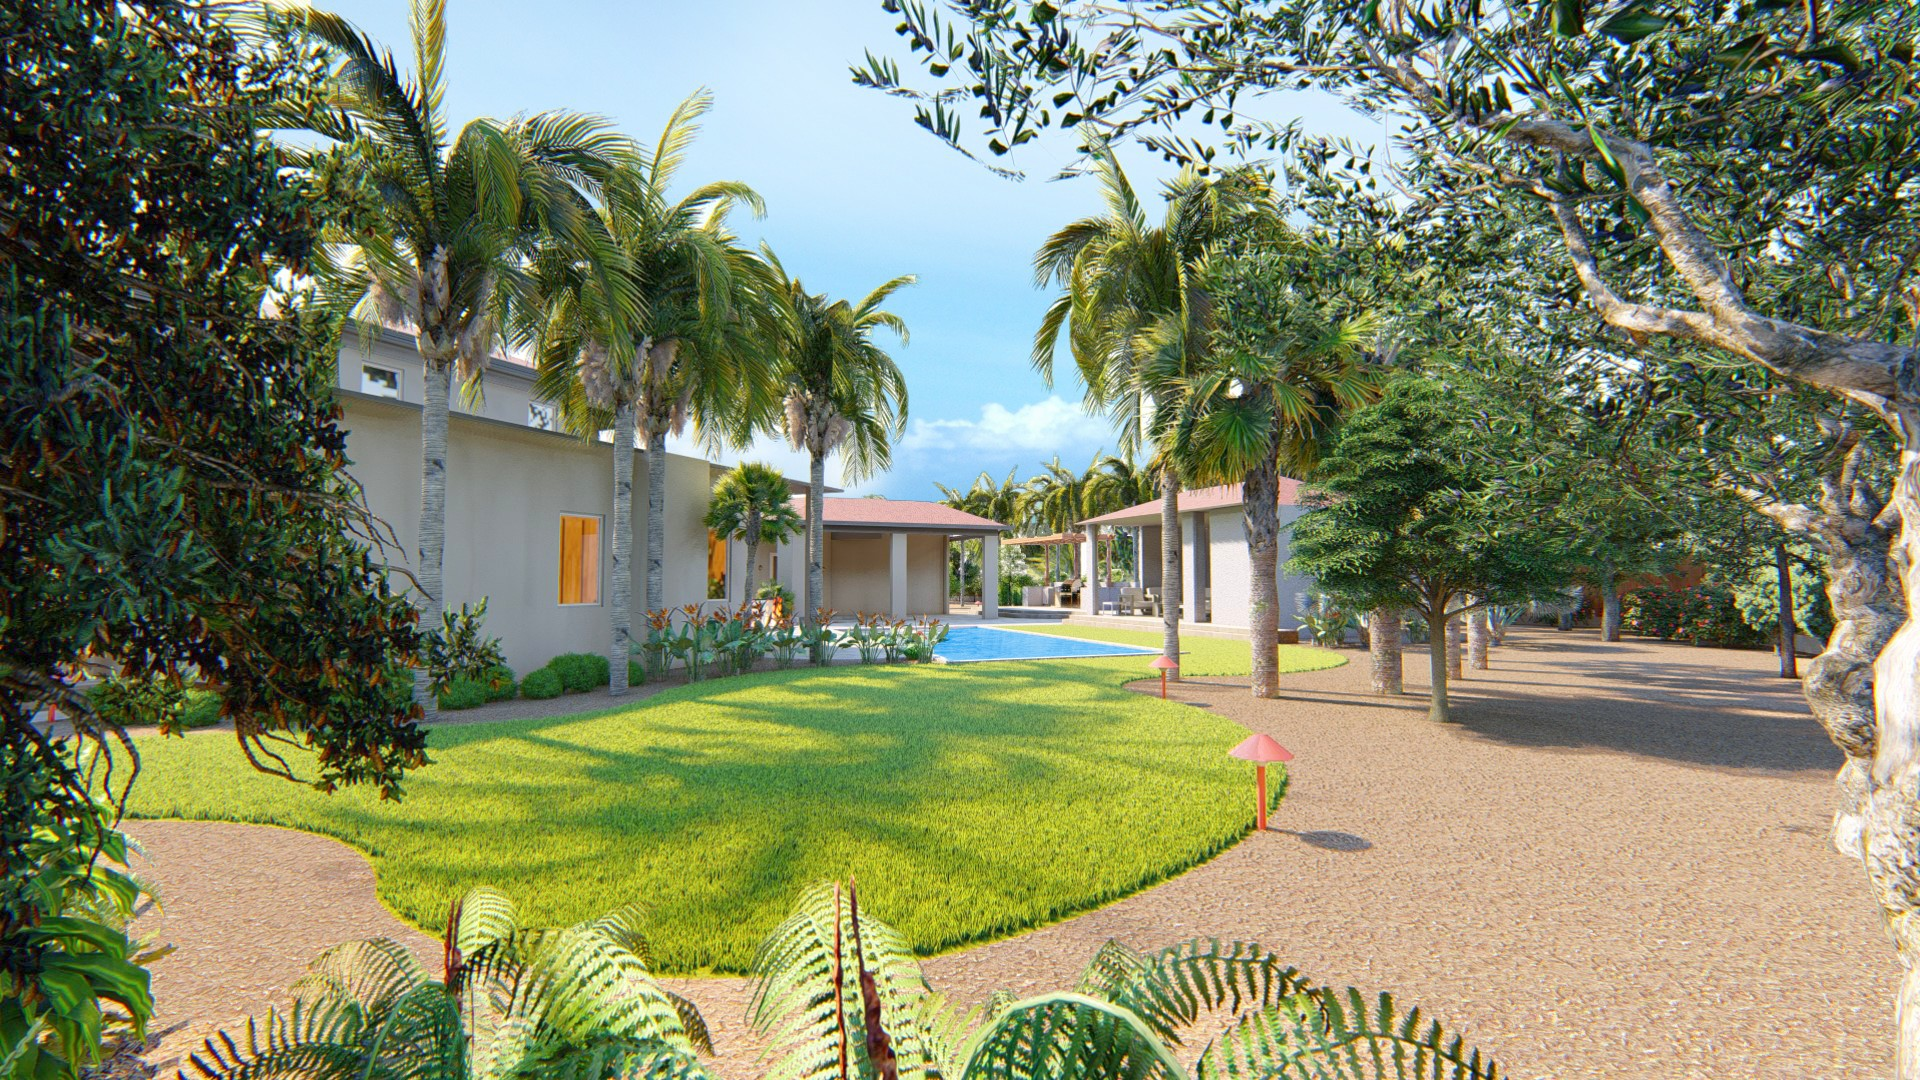 ✨Fresh Landscape 🌴 Architecture 🏛️Project ✨